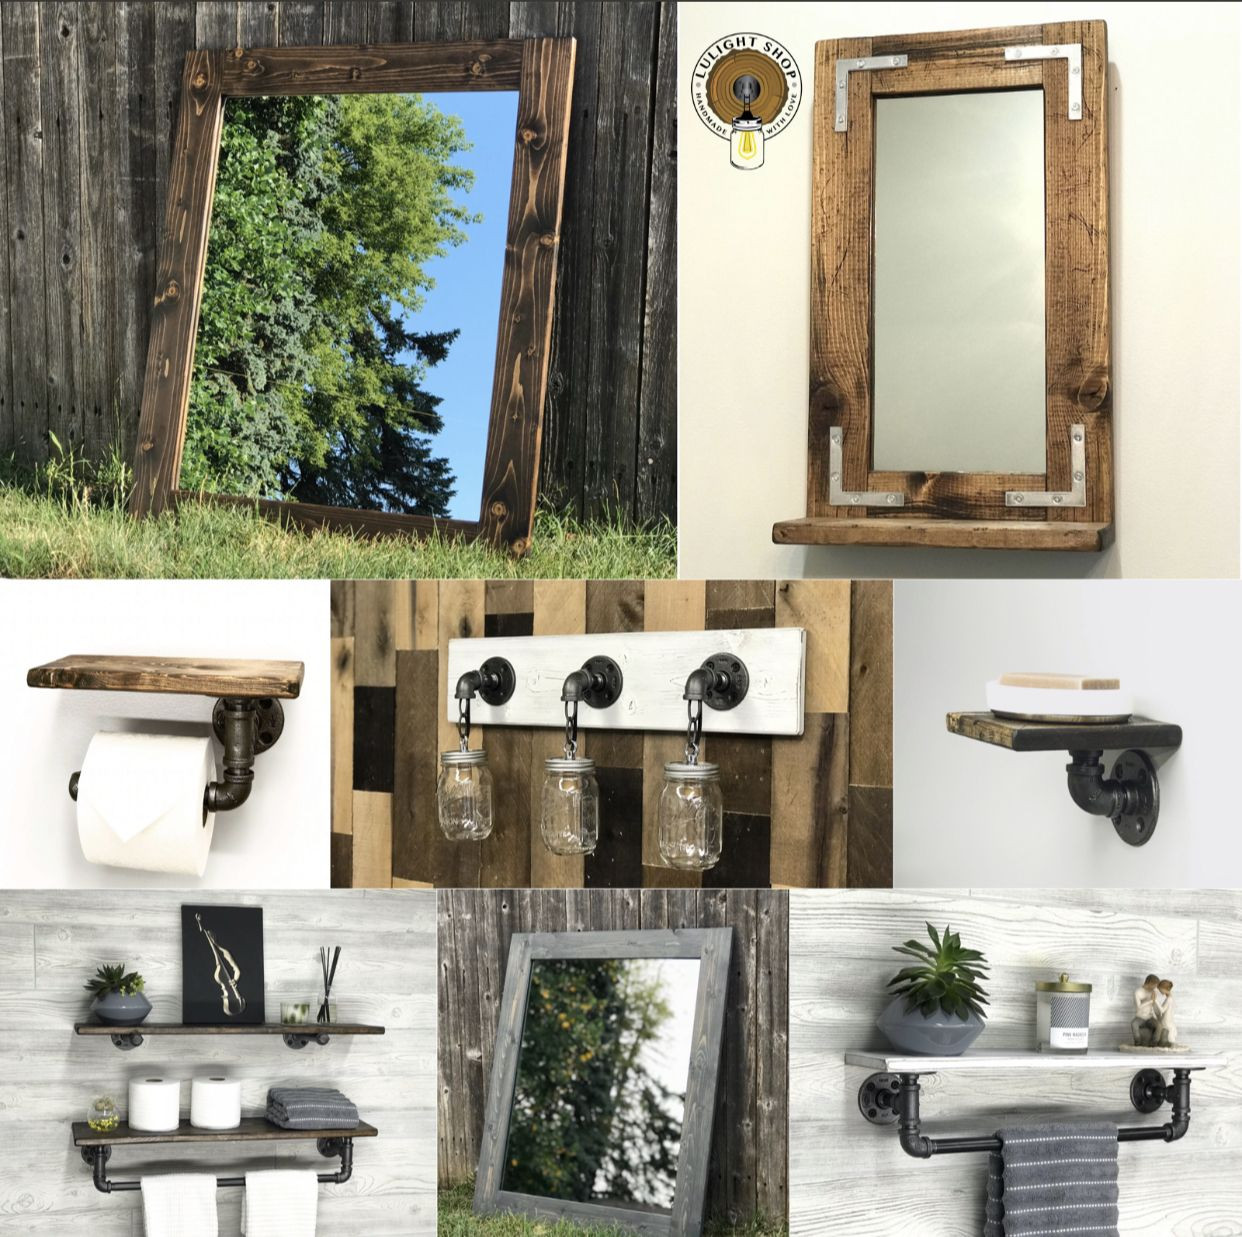 HANDMADE FARMHOUSE RUSTIC LIGHTING AND HOME DECOR by